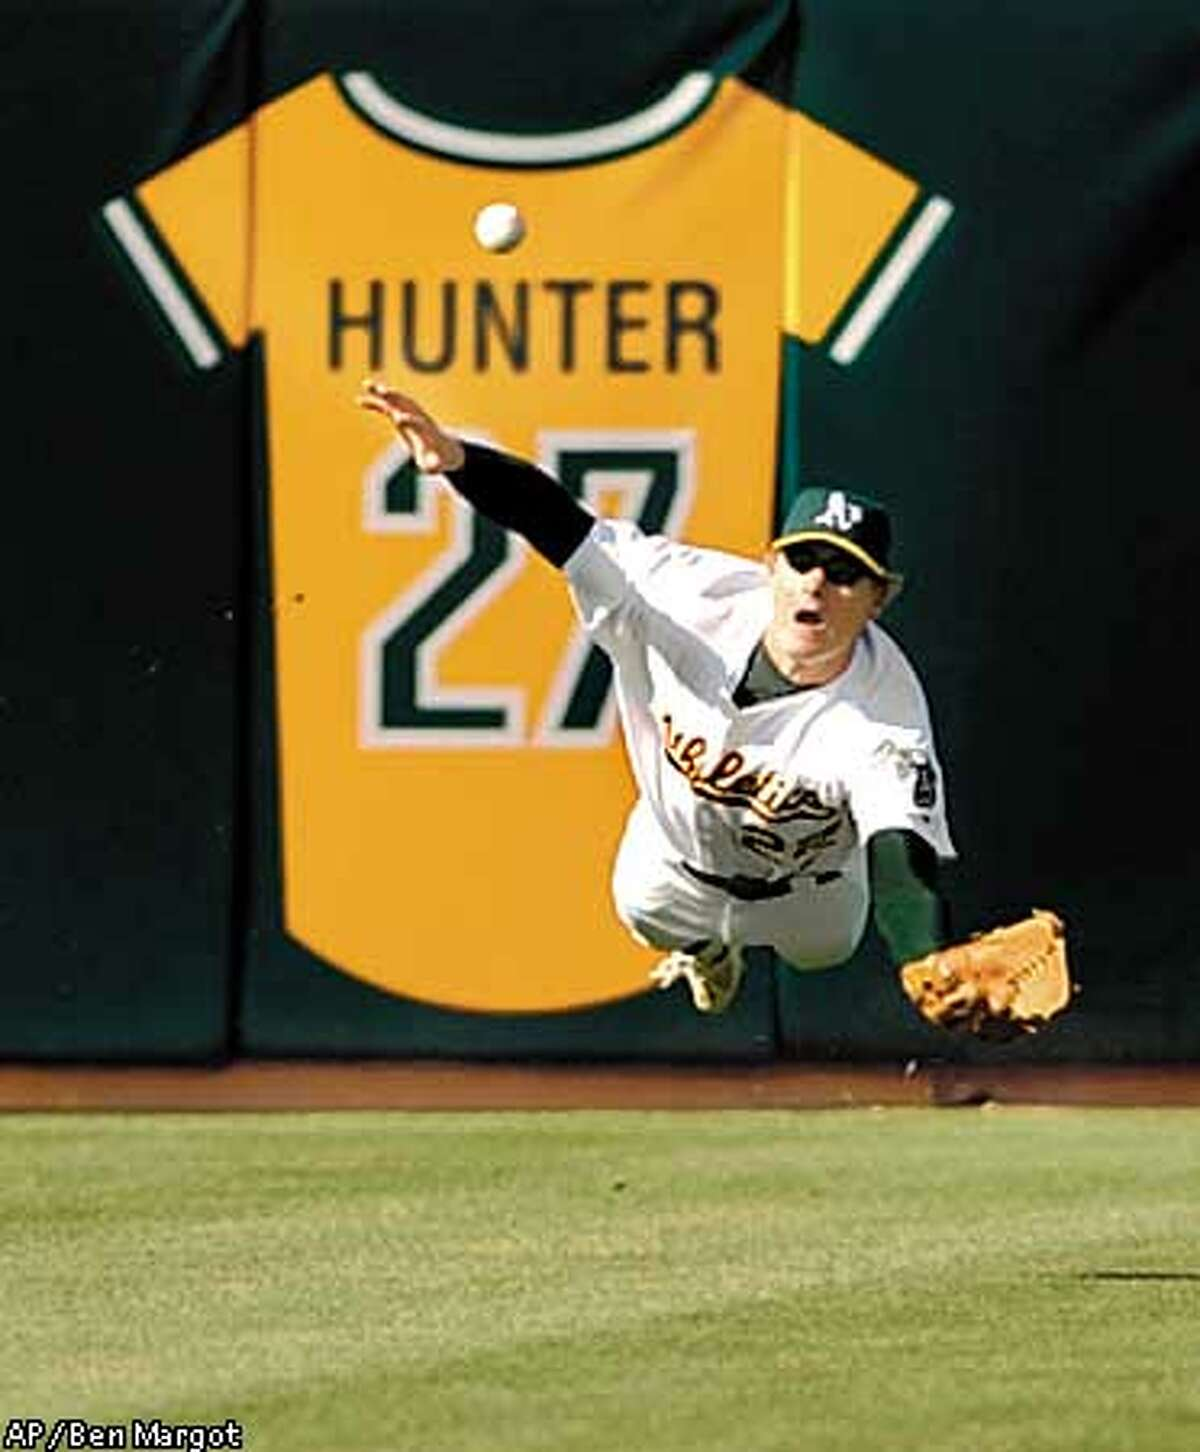 Oakland Athletics center fielder Eric Byrnes dives but can't make the catch on a ball hit by Anaheim Angels' Shawn Wooten, Saturday, April 5, 2003, in Oakland, Calif. Wooten was later tagged out on the same play on his way to second base. The A's won the game, 4-2. (AP Photo/Ben Margot)